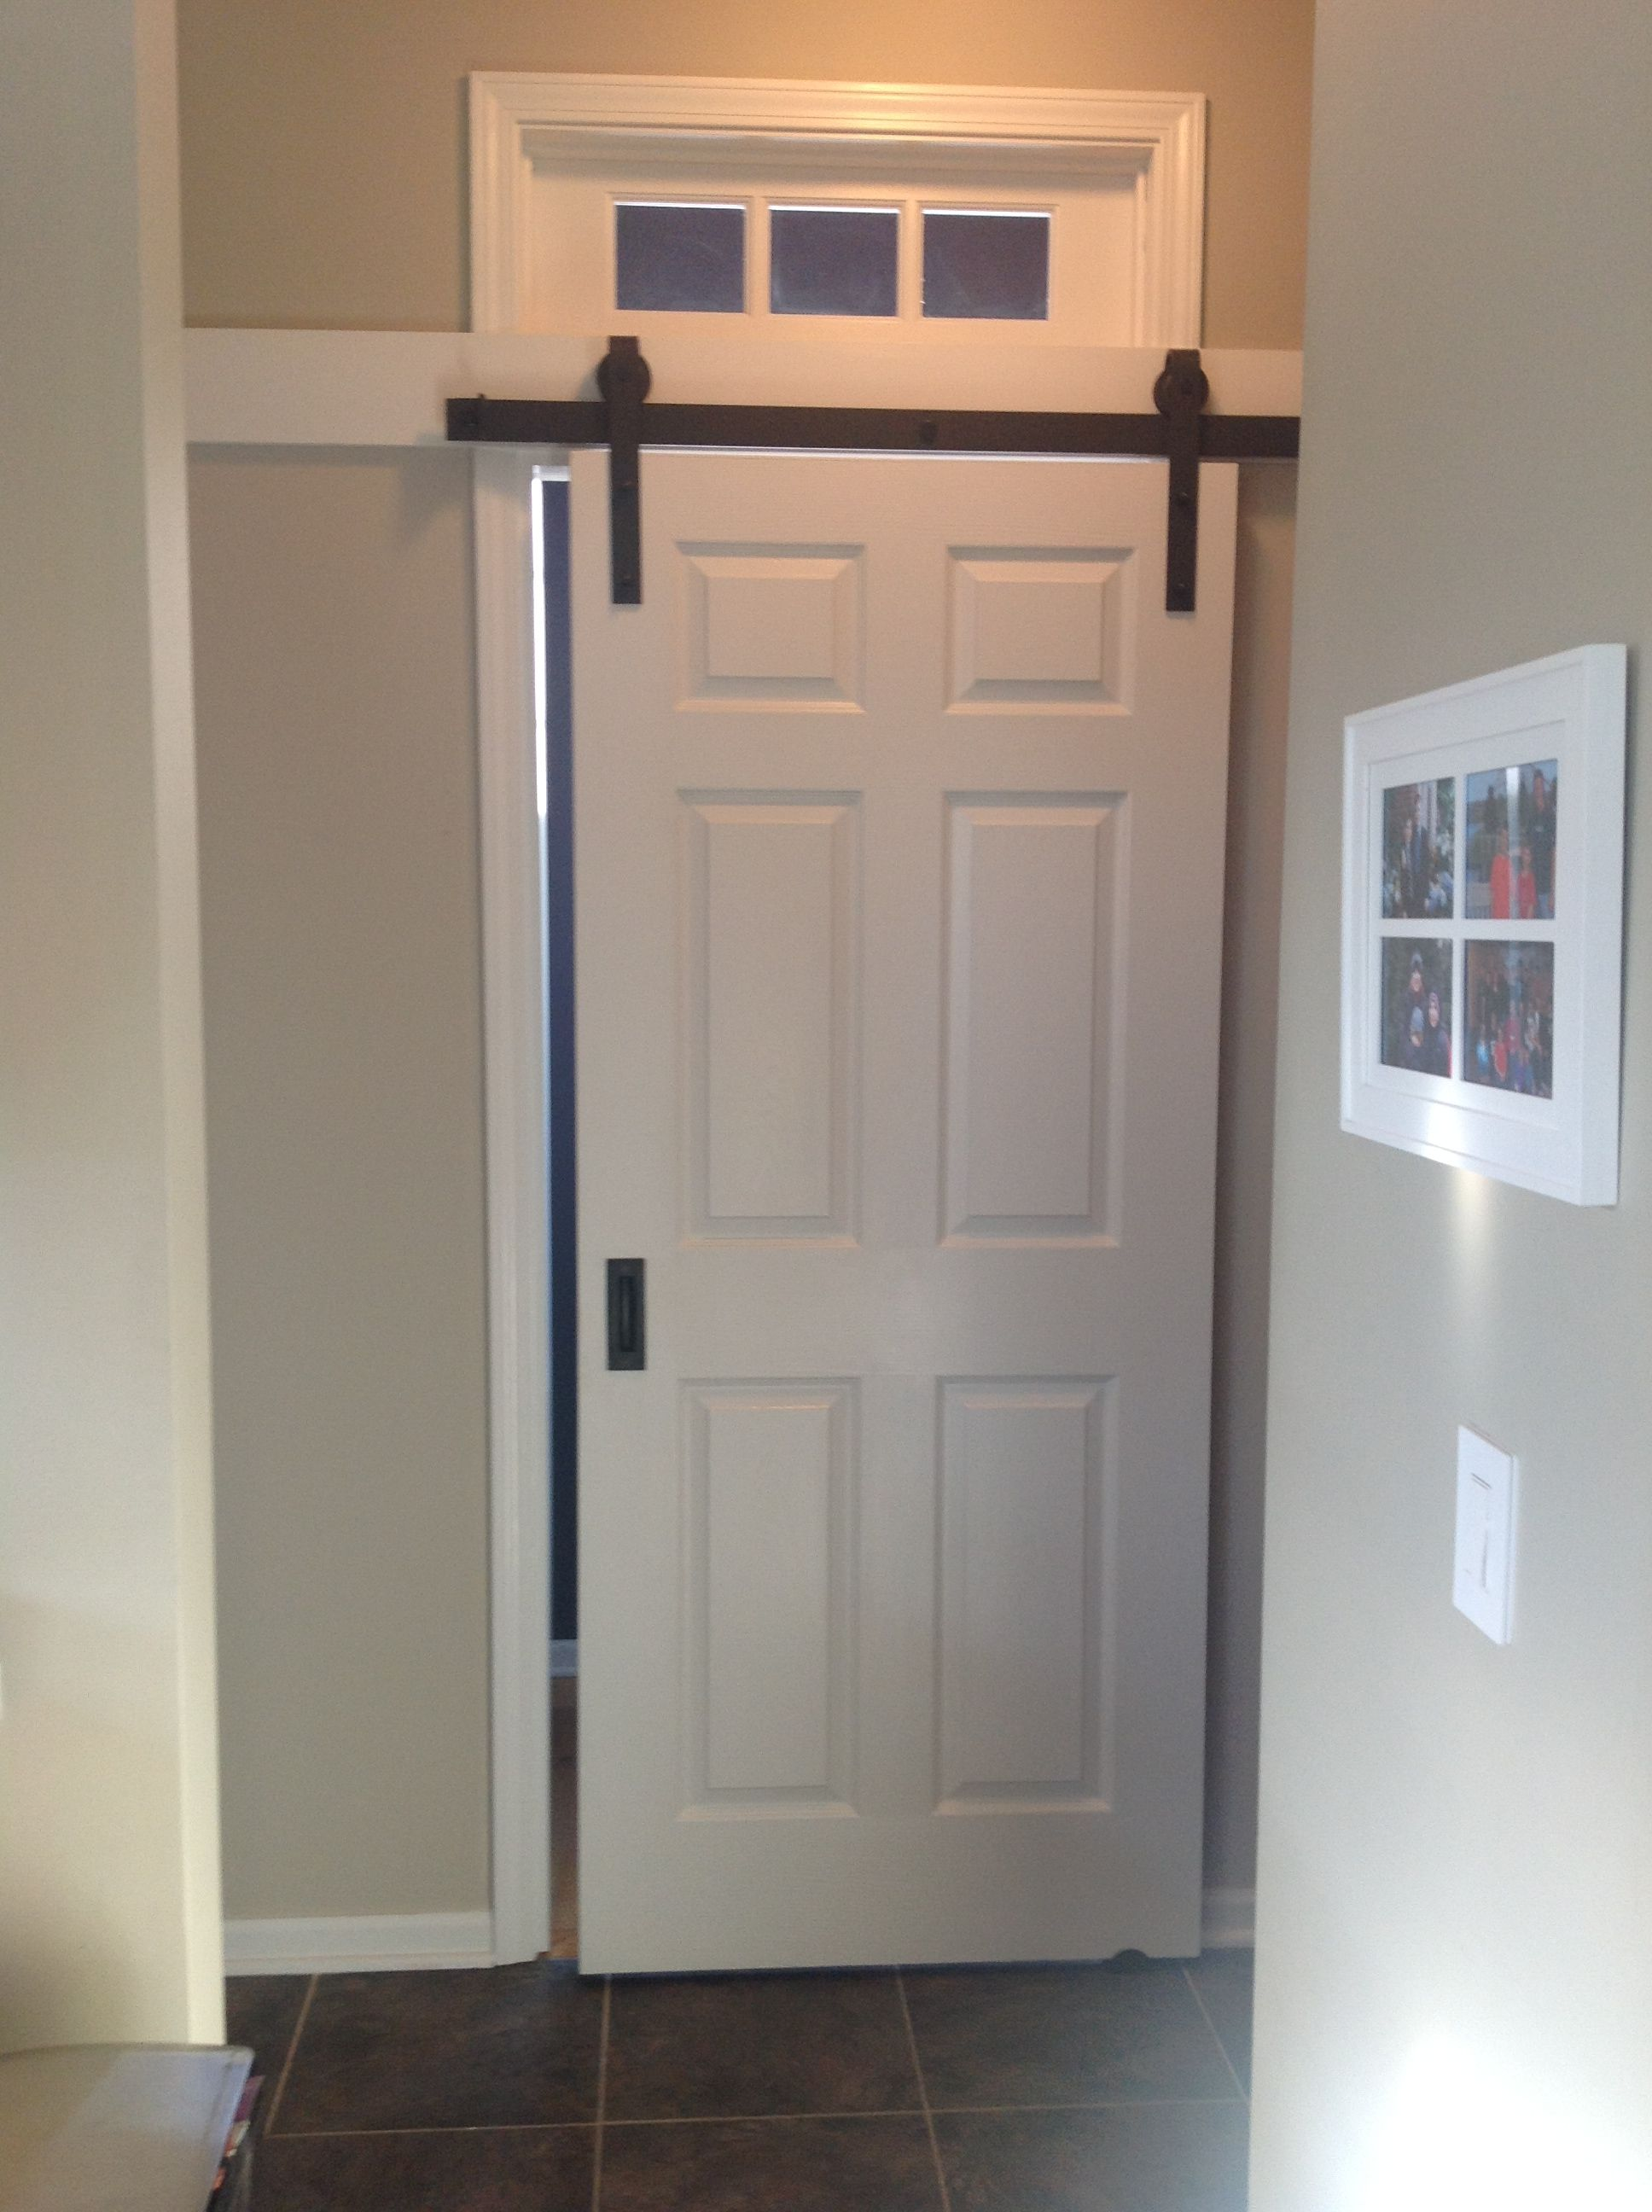 New barn door saves space in the hall Real Carriage Hardware